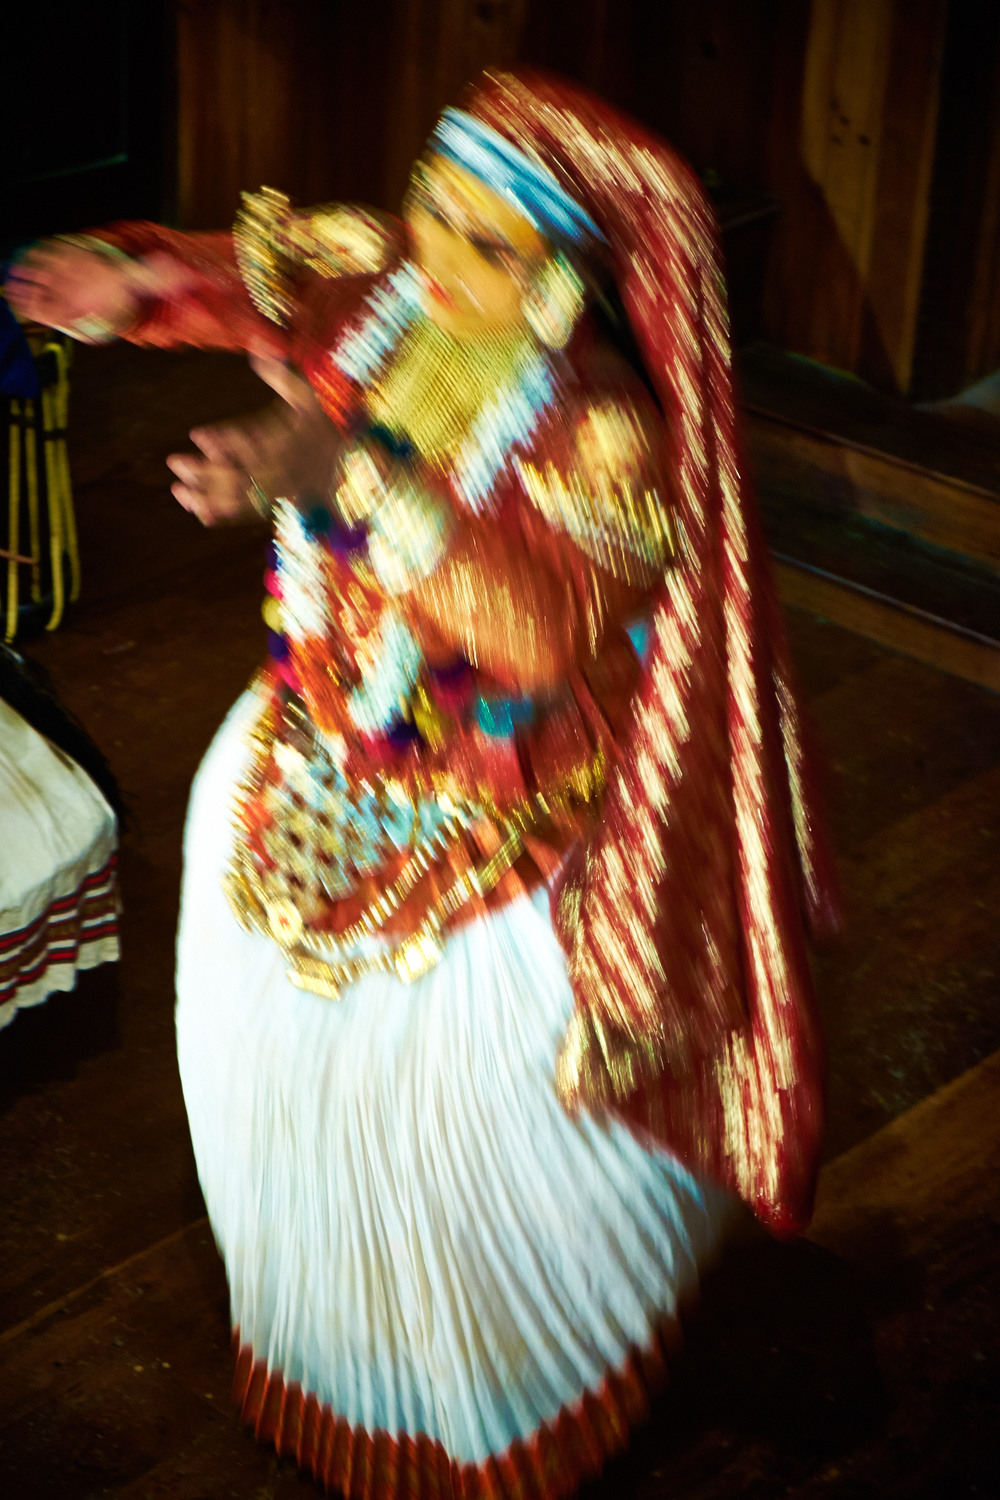 christopher-melton-kathakali-07